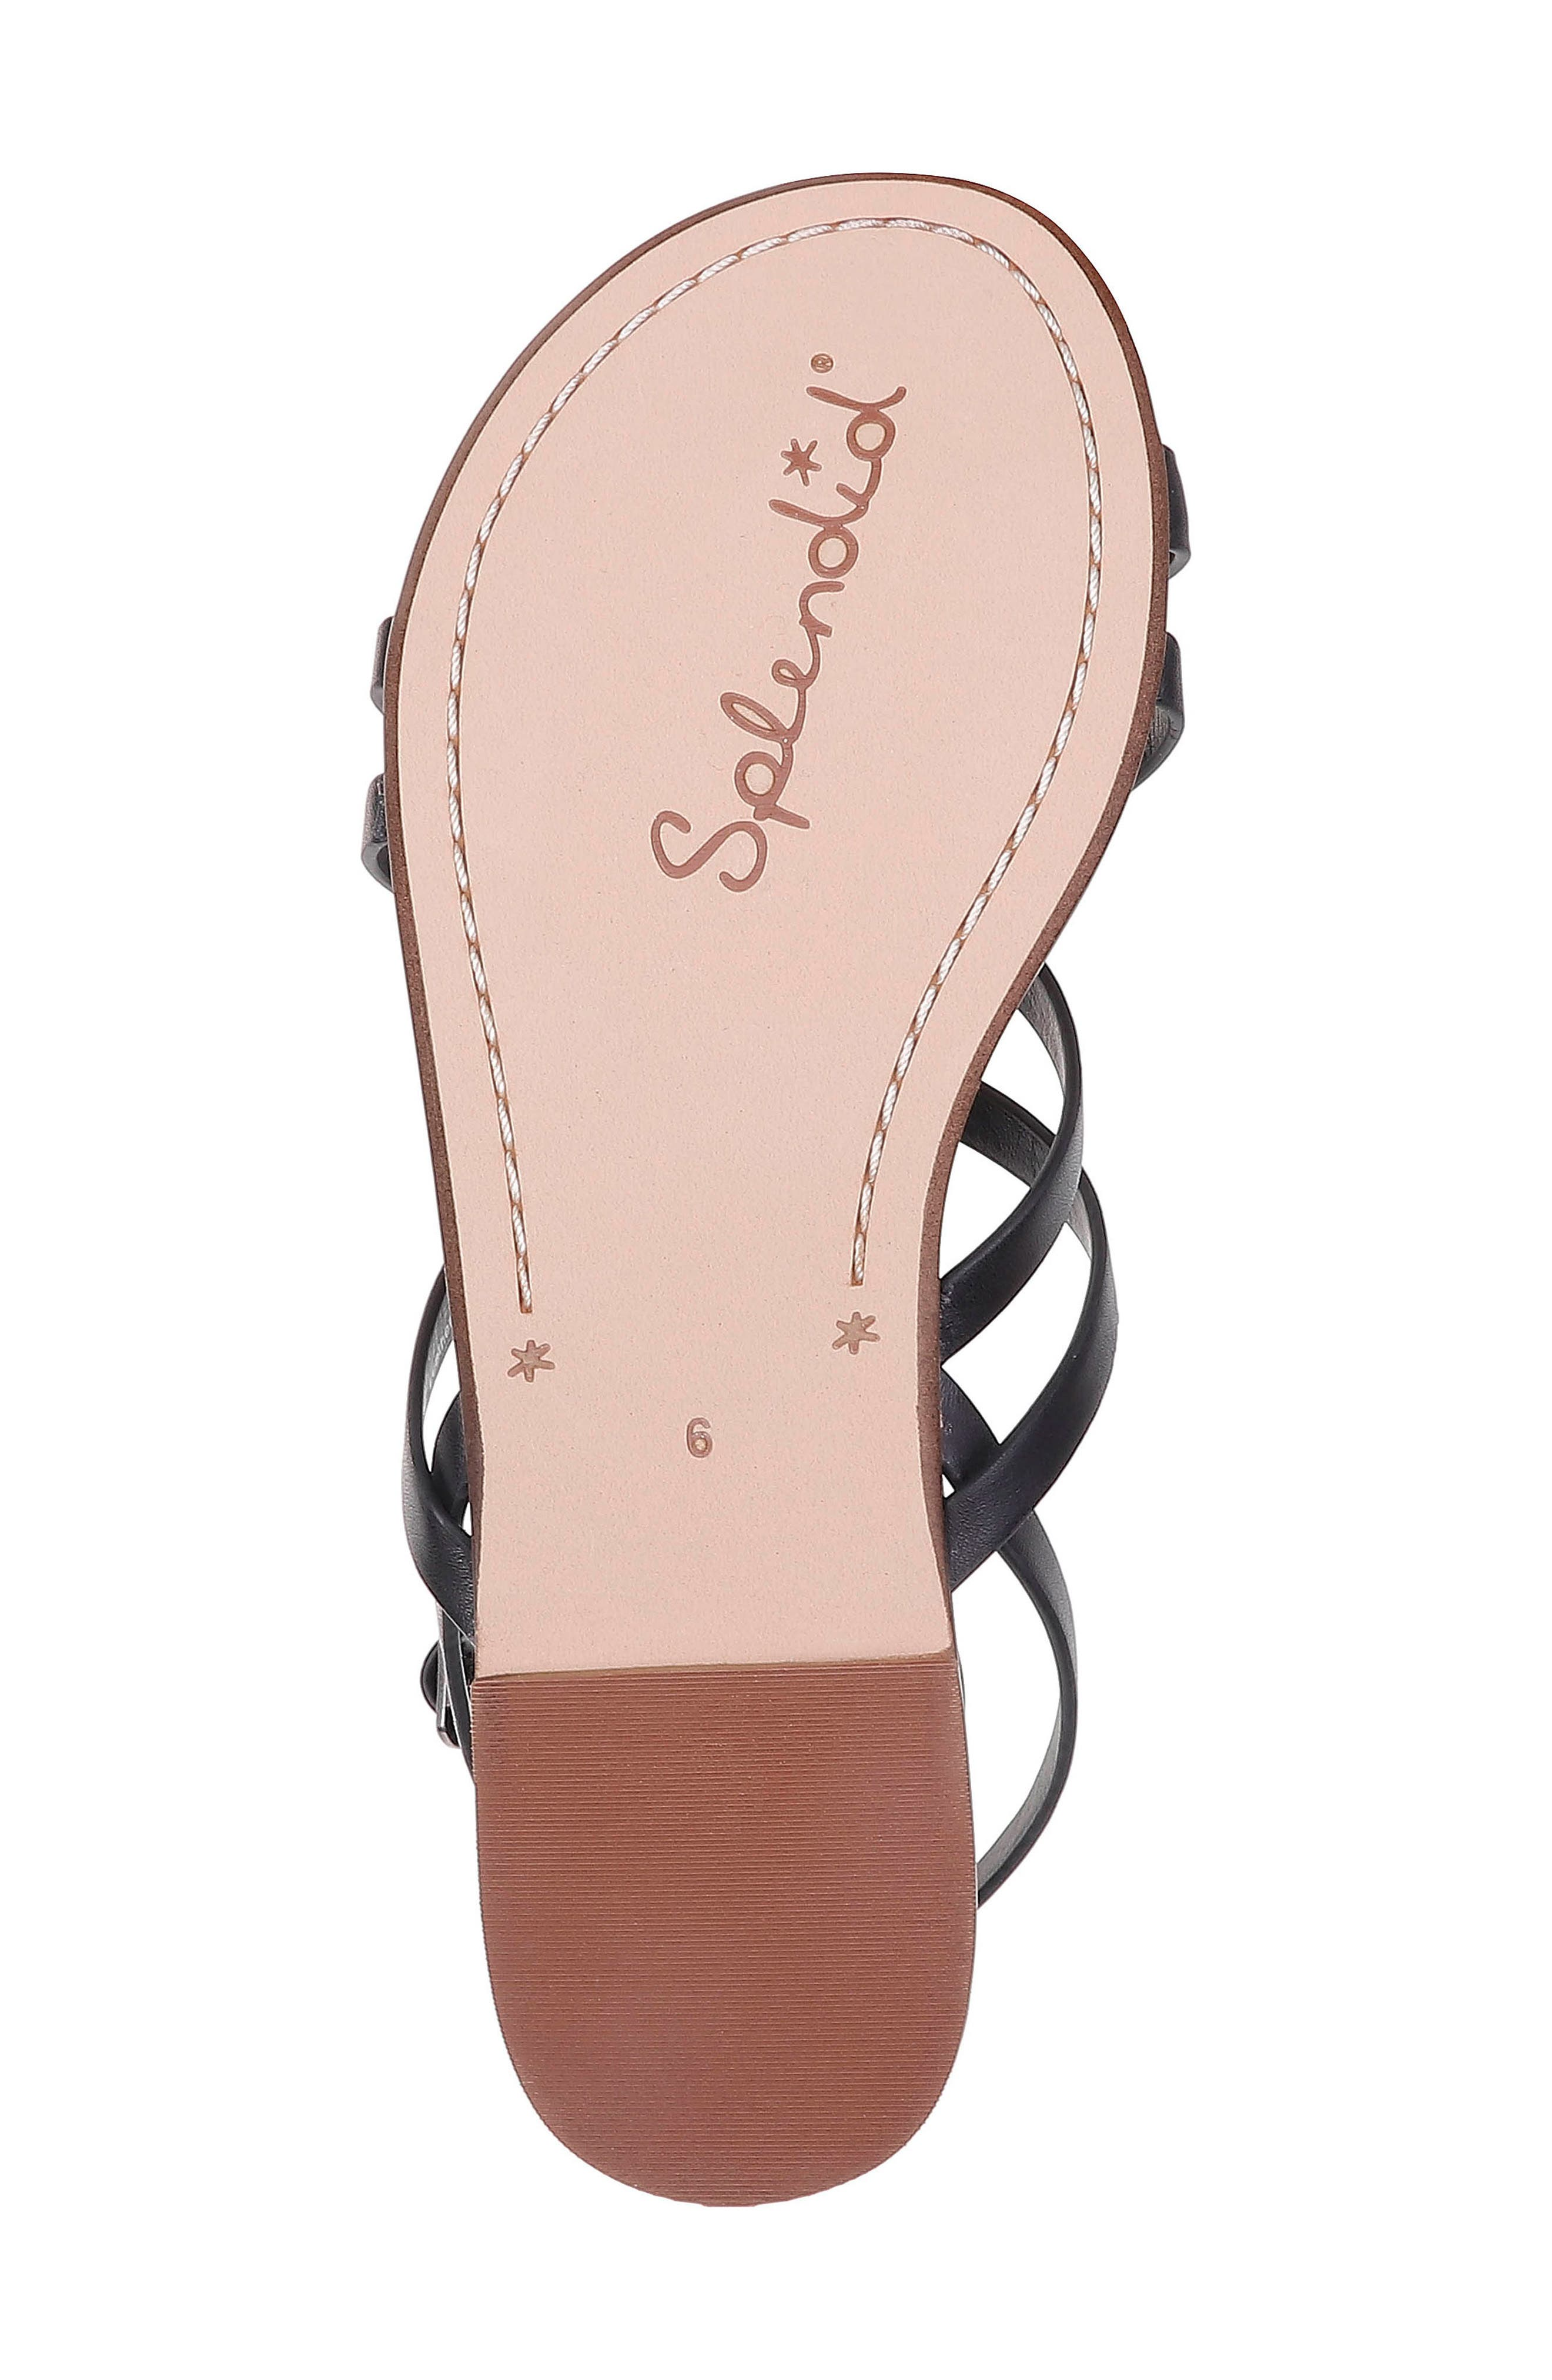 Sully Strappy Toe Loop Sandal,                             Alternate thumbnail 6, color,                             BLACK LEATHER